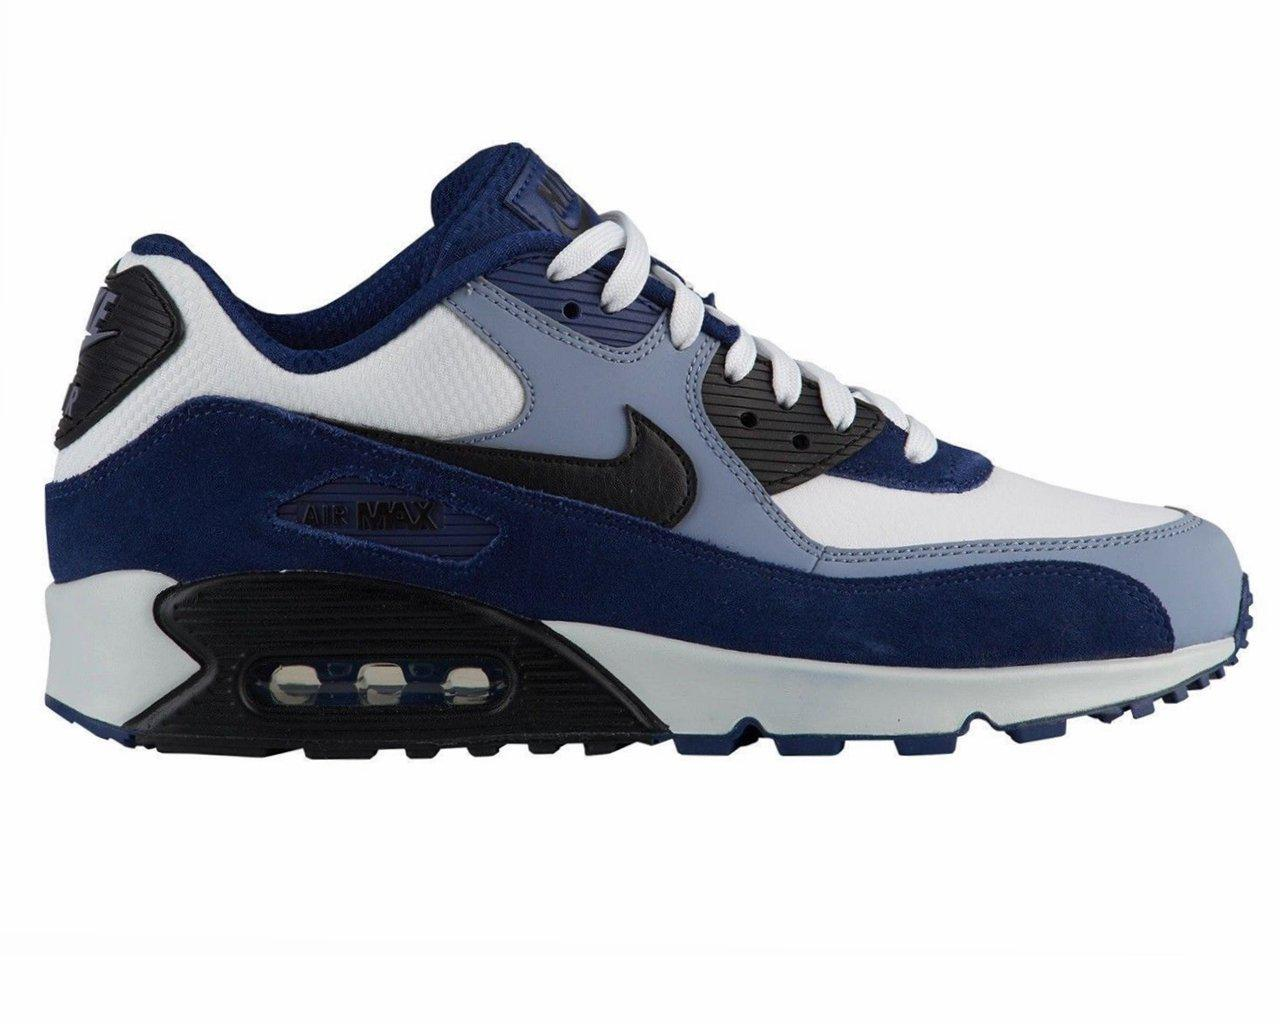 158f5691ad Nike Air Max 90 Leather Trainers Blue White in Blue for Men - Lyst